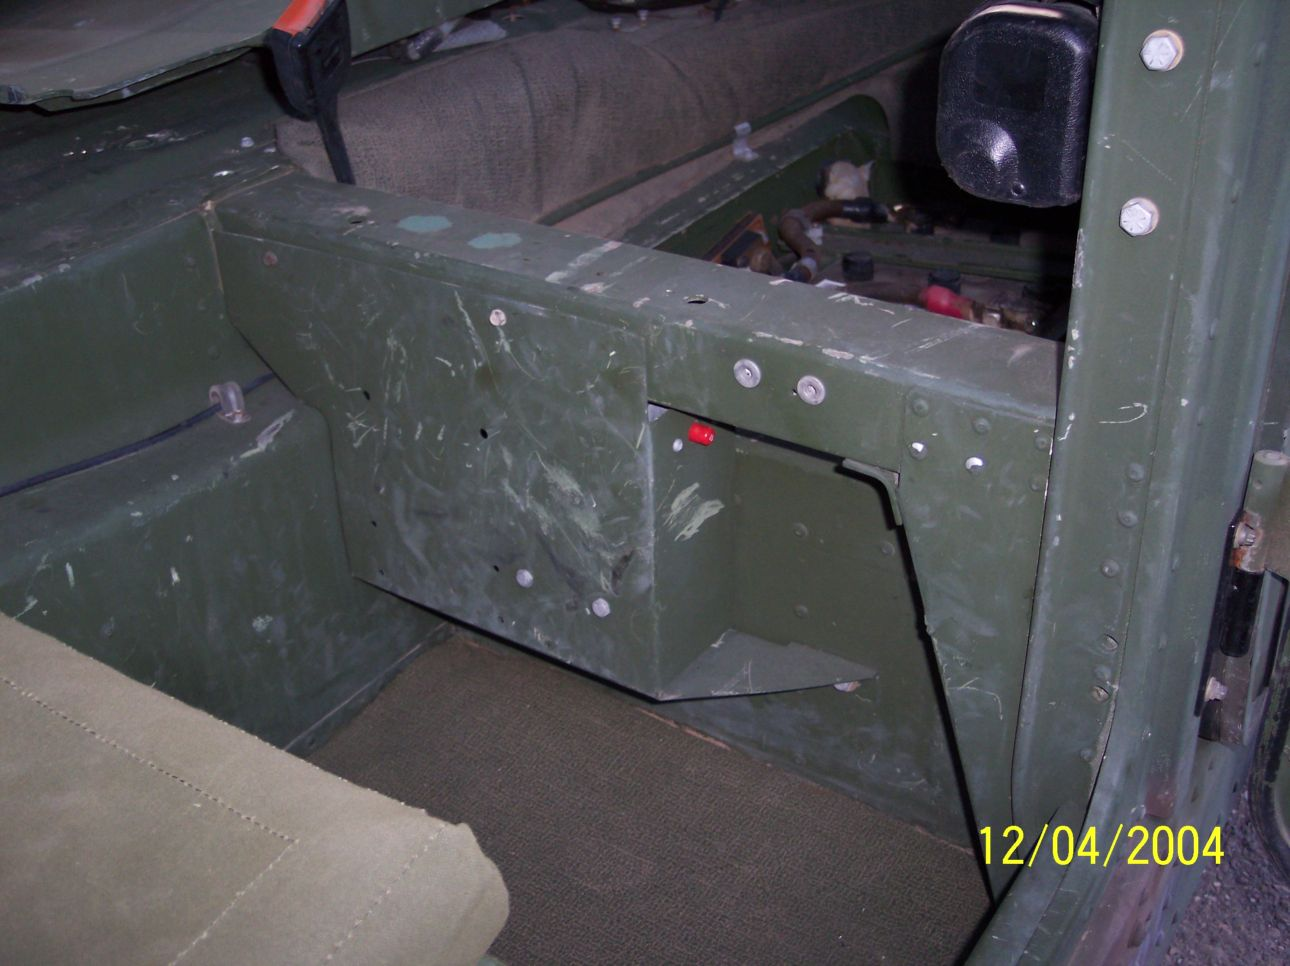 Hmmwv Bus Bar Diagram Nice Place To Get Wiring Engine A2 Photos Rh Hummerknowledgebase Com Load Plan Electric